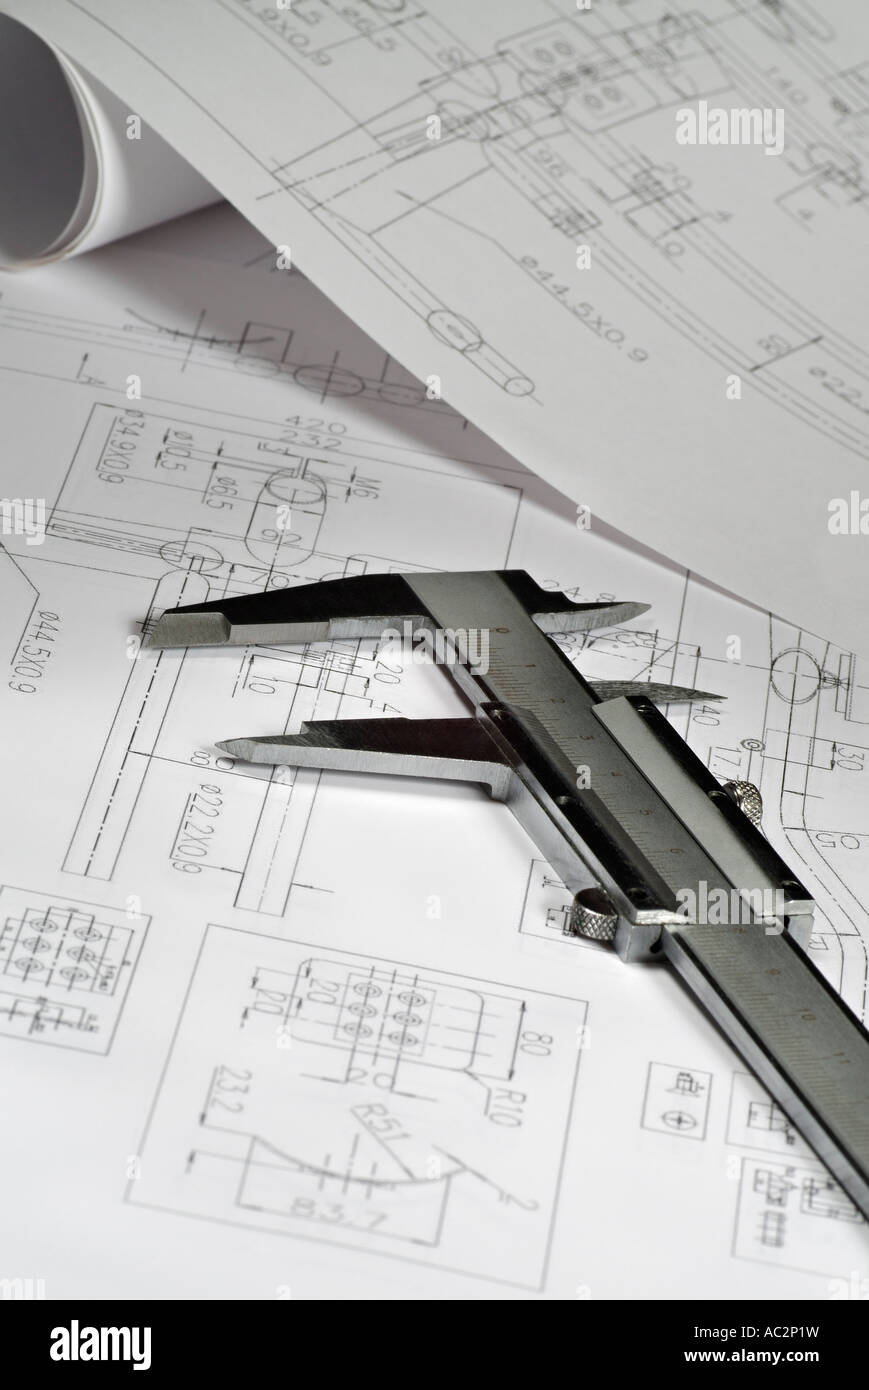 Vernier Callipers and Design Blueprints - Stock Image